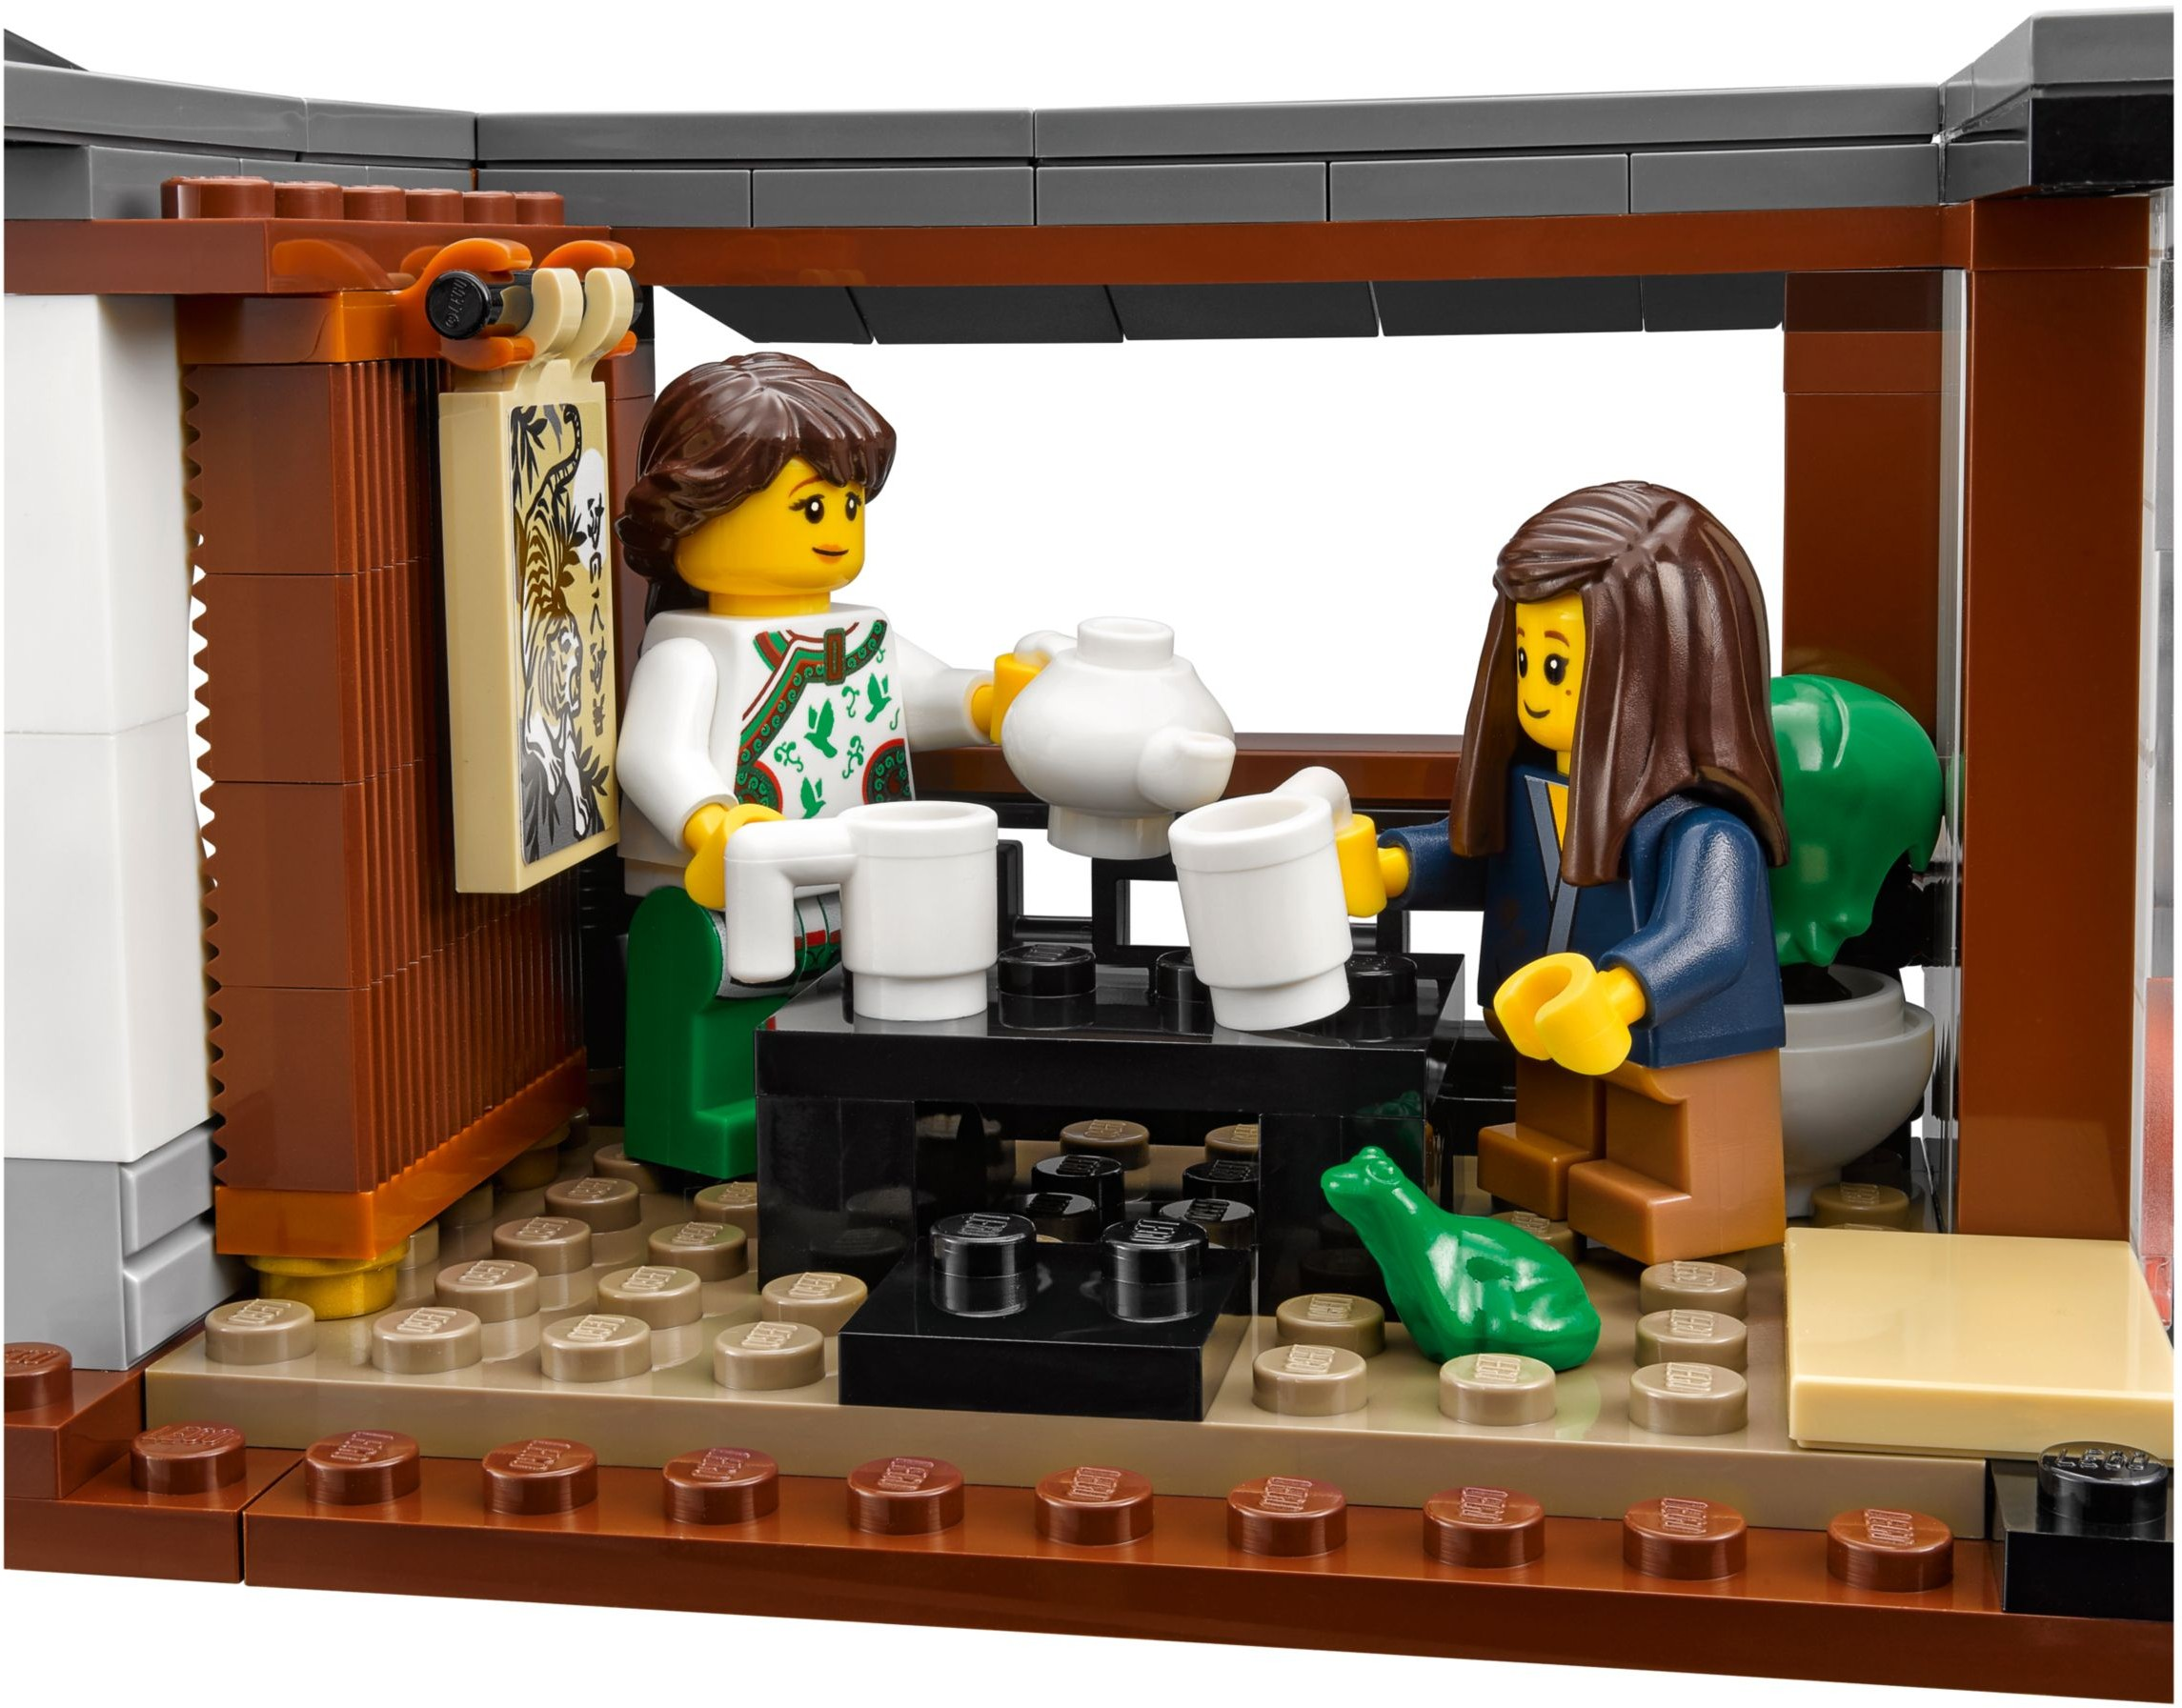 https://images.brickset.com/sets/AdditionalImages/70620-1/70620_alt15.jpg